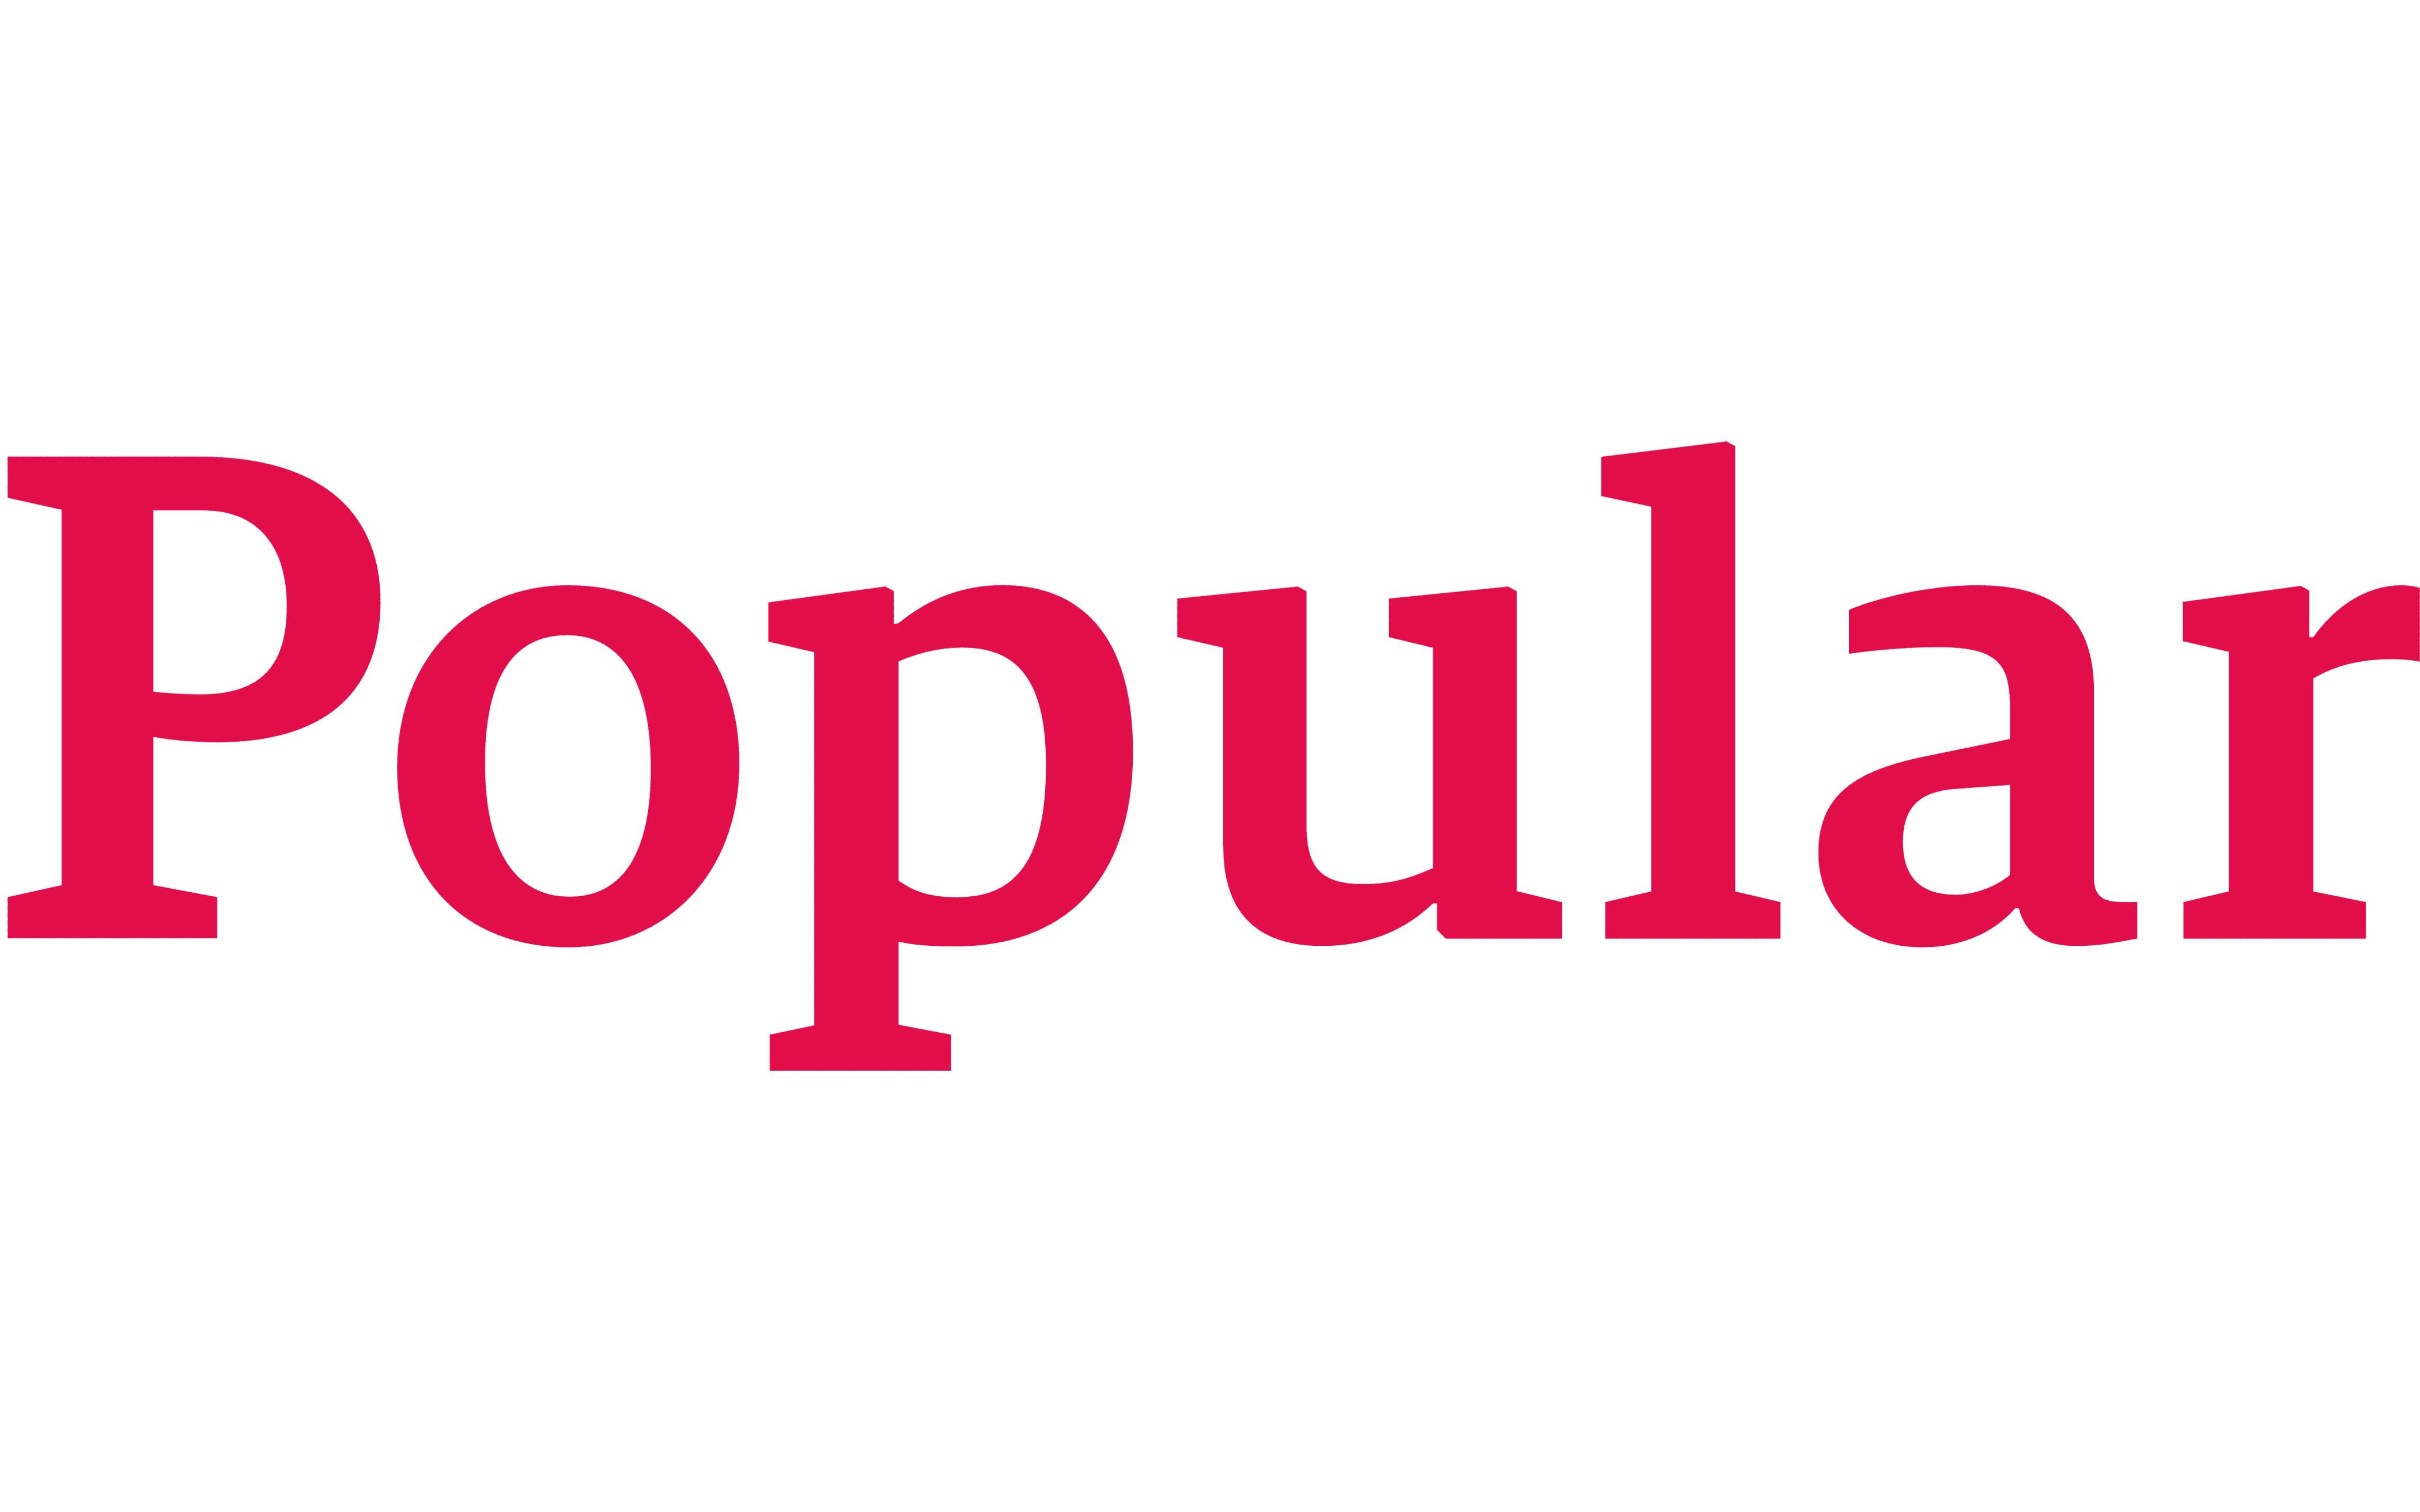 Banco Popular Logo And Symbol Meaning History Png